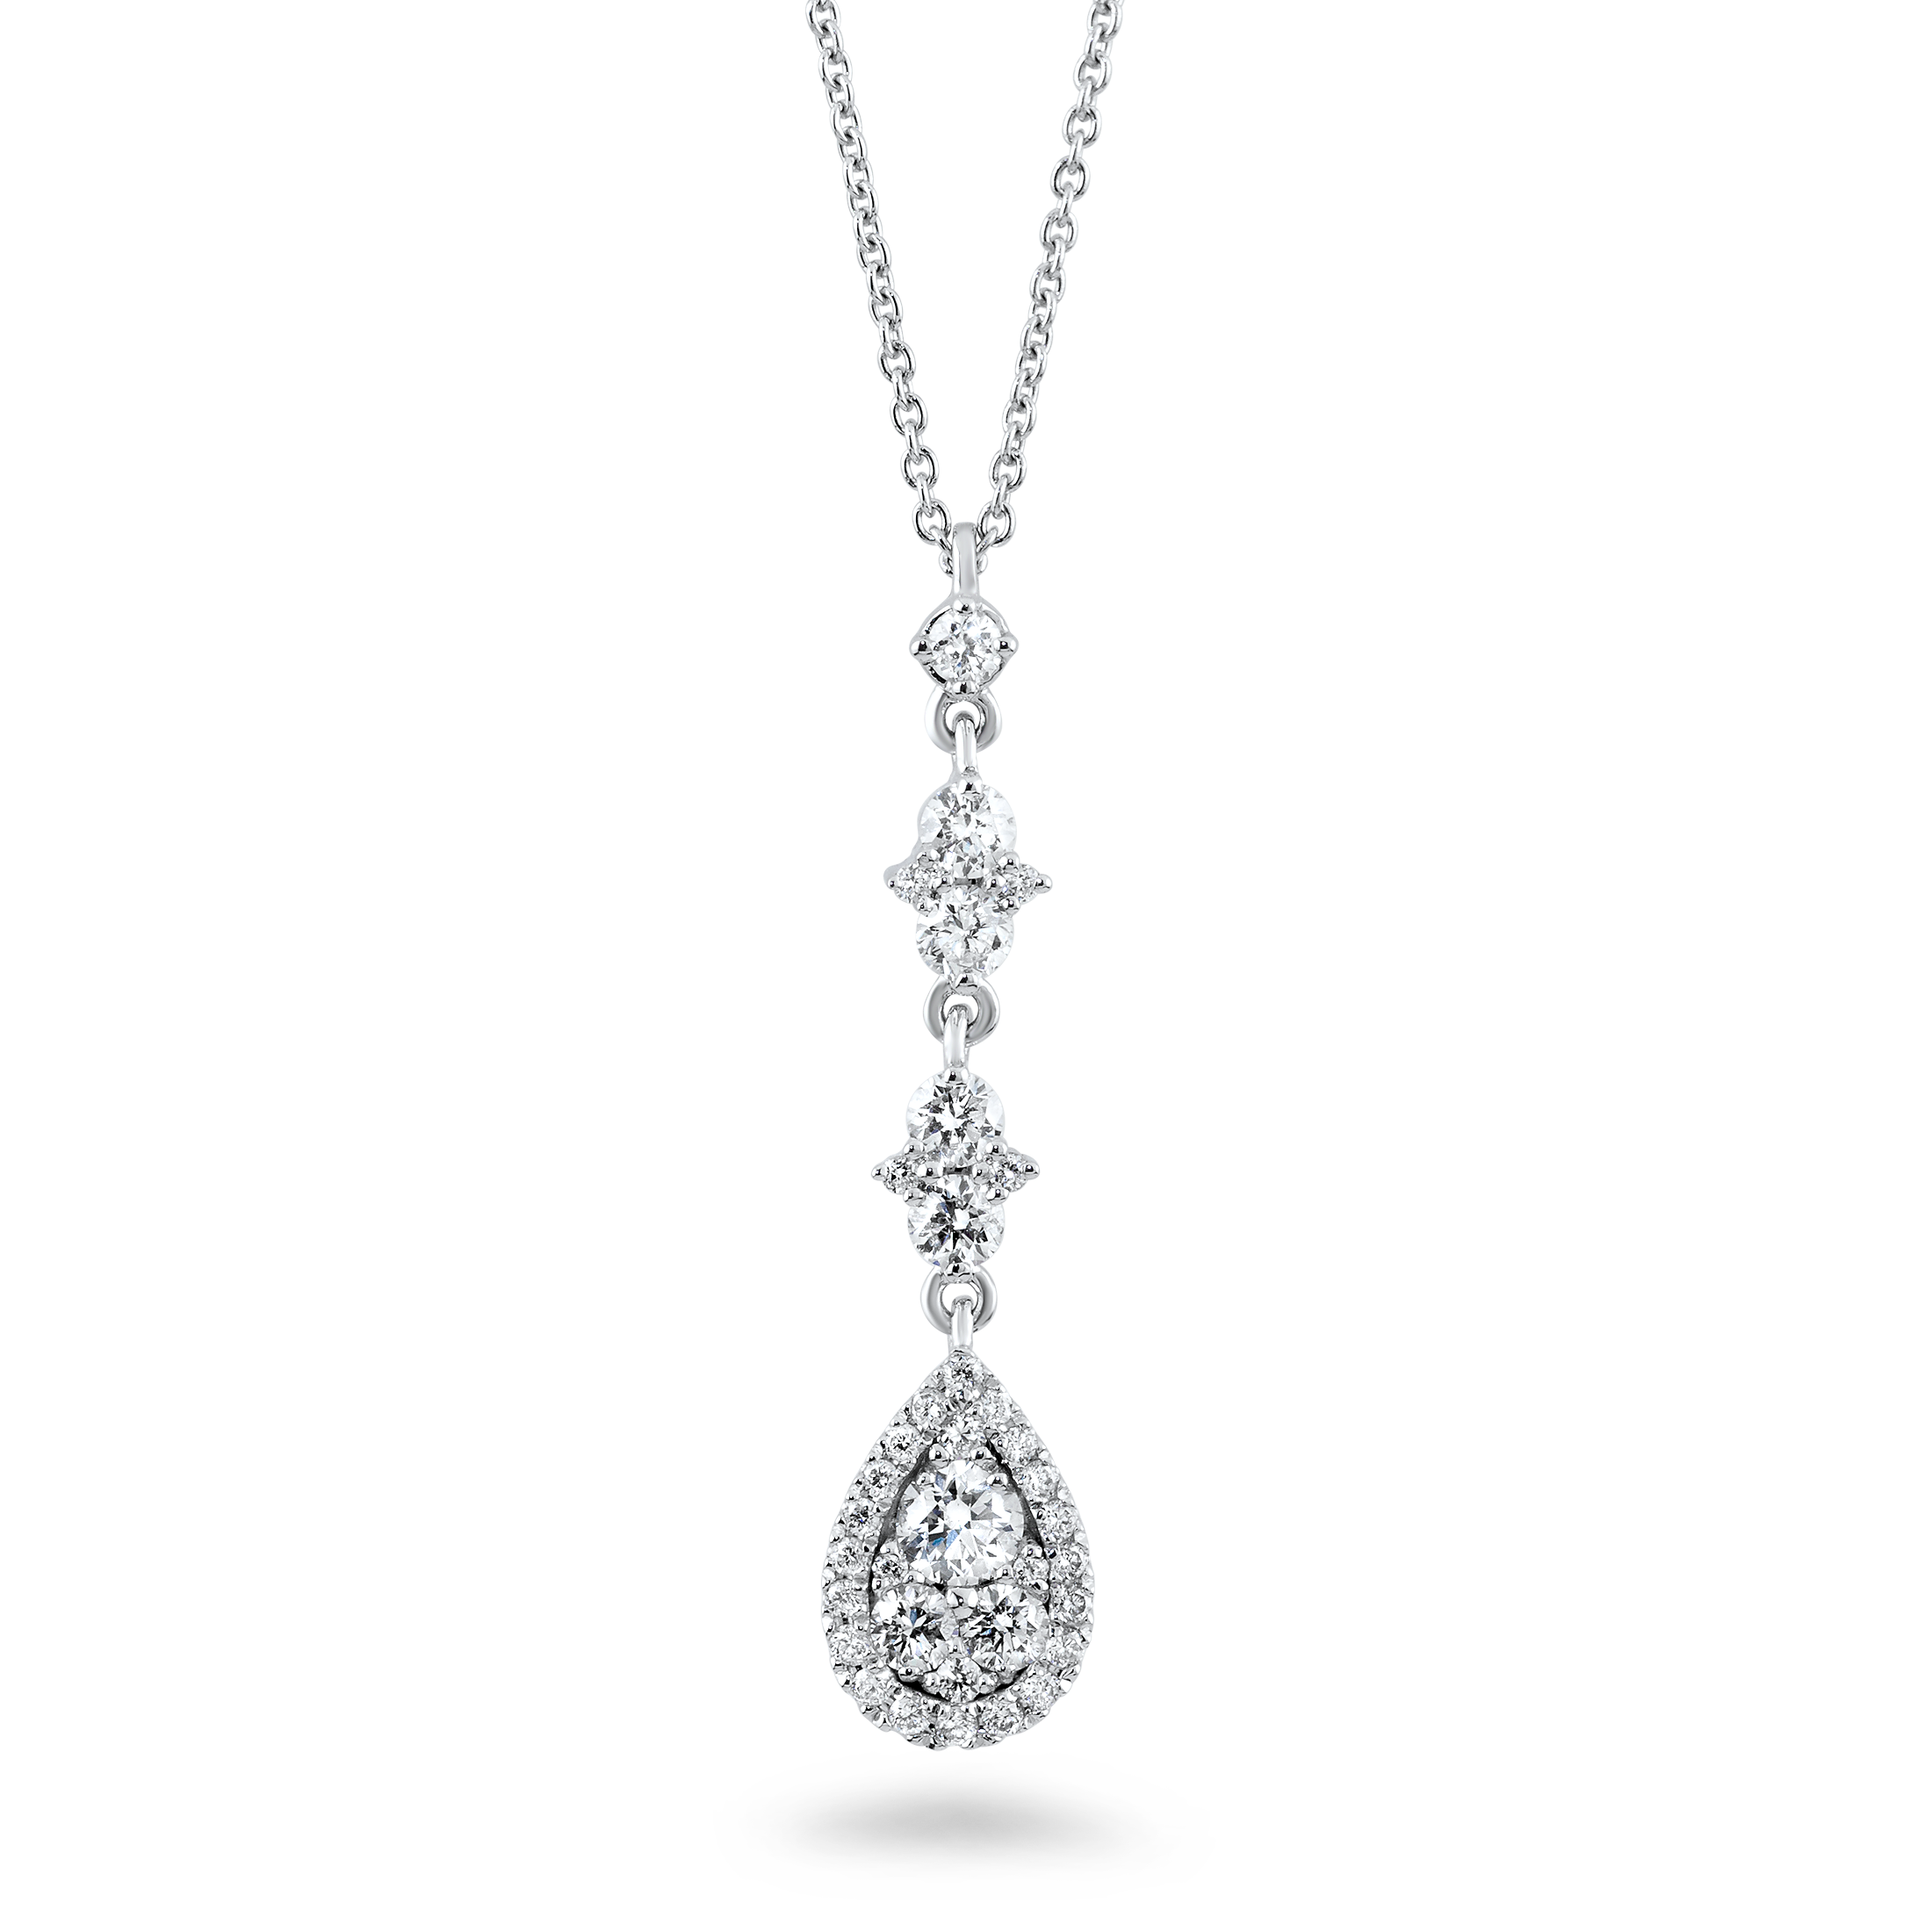 Diamond necklace png. Carat diamondland